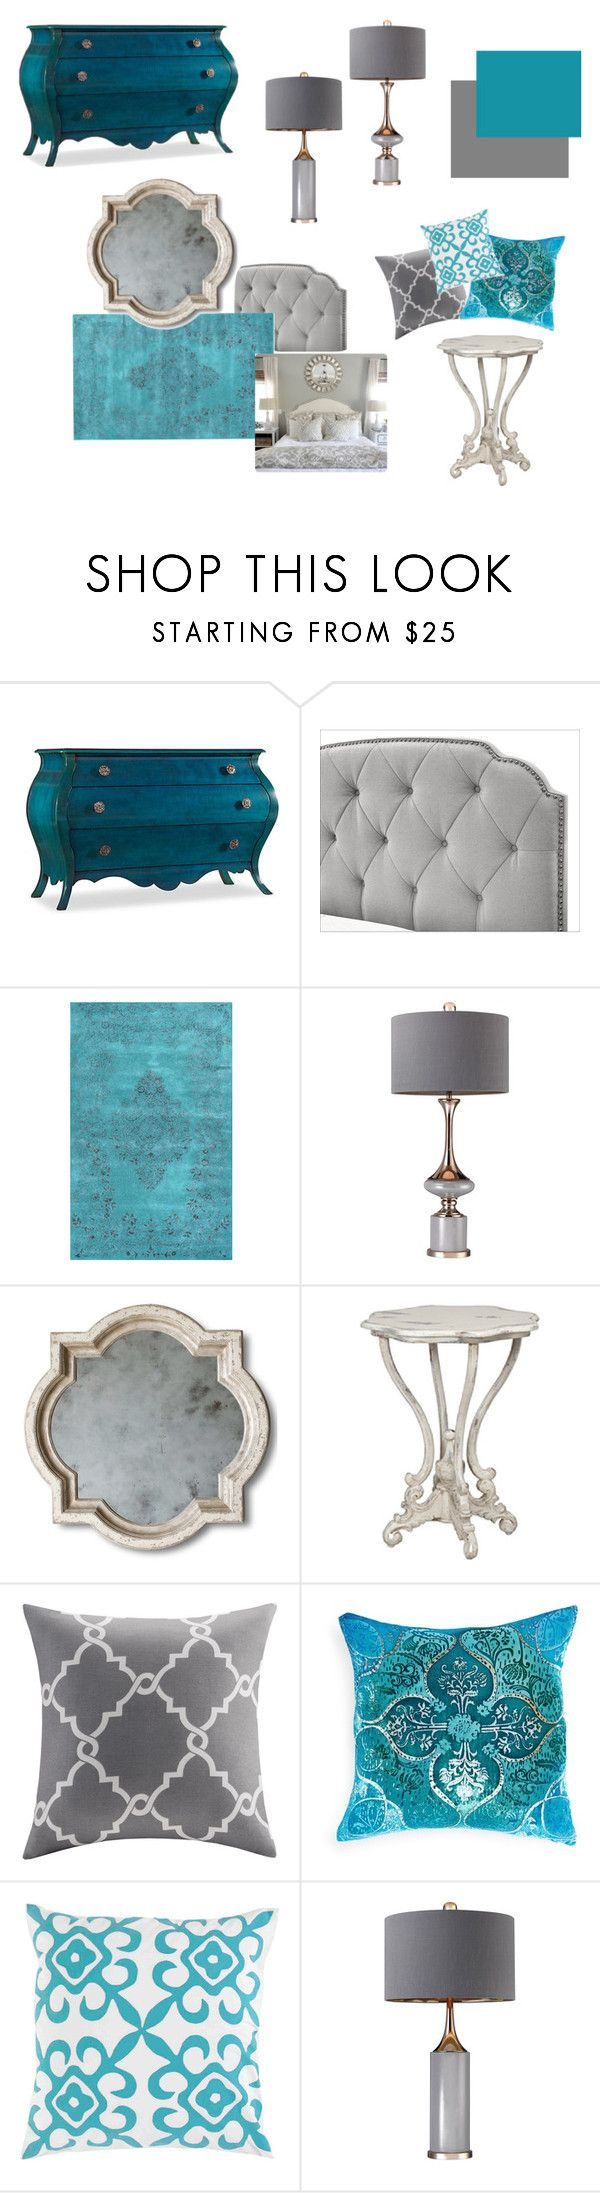 """Aqua and Gray Bedroom"" by snooziec ❤ liked on Polyvore featuring interior, interiors, interior design, home, home decor, interior decorating, Hooker Furniture, nuLOOM, Madison Park and Kevin O'Brien"